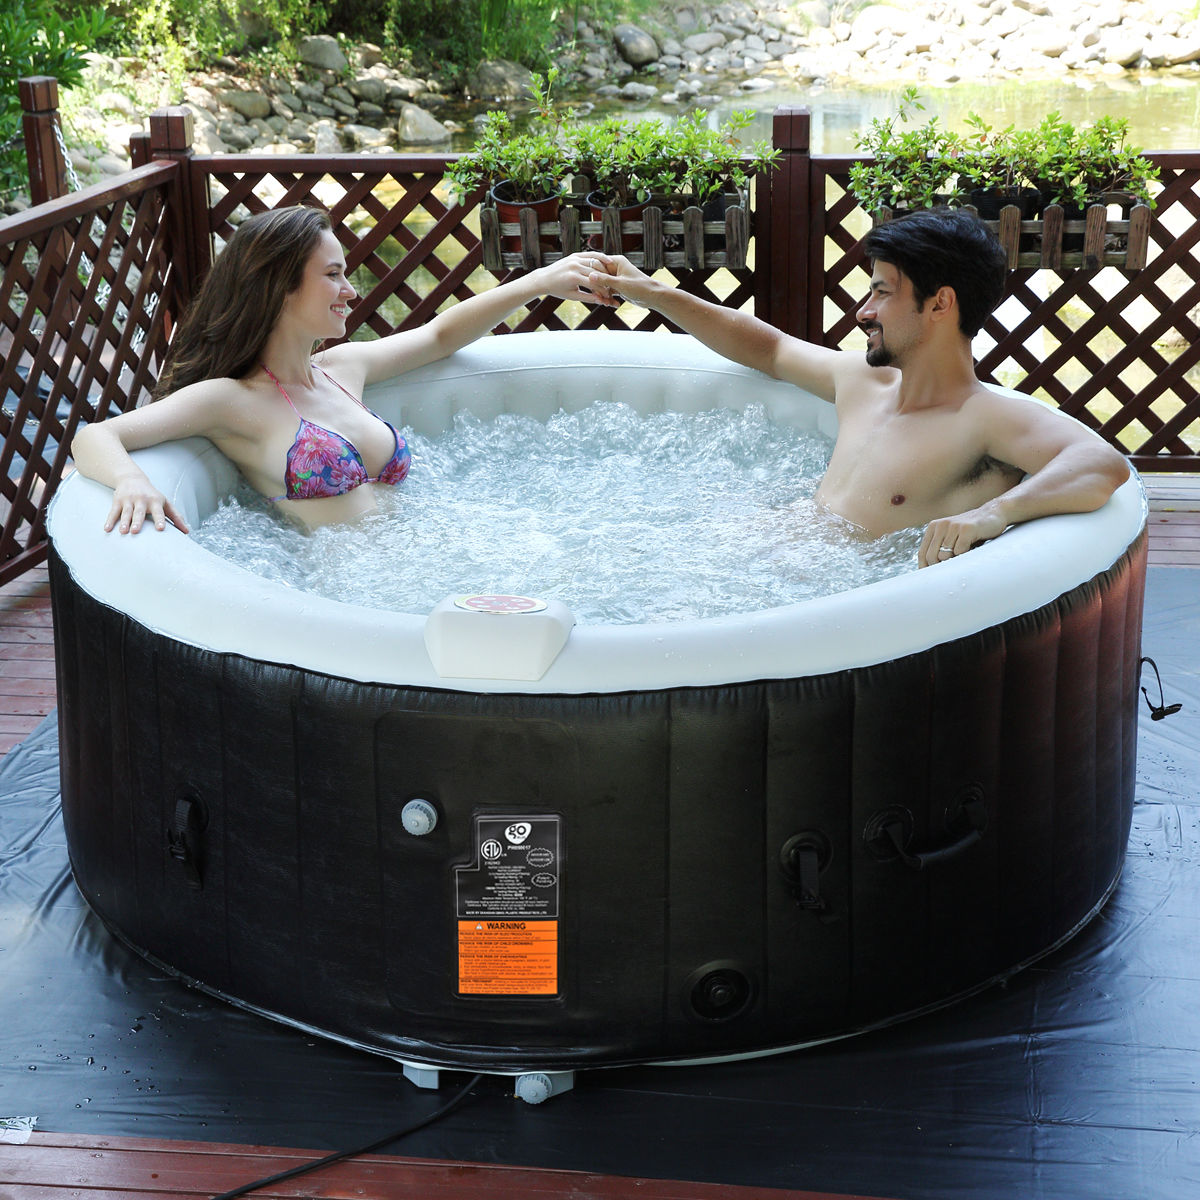 Goplus Portable Inflatable Bubble Massage Spa Hot Tub 4 Person Relaxing Outdoor by Costway